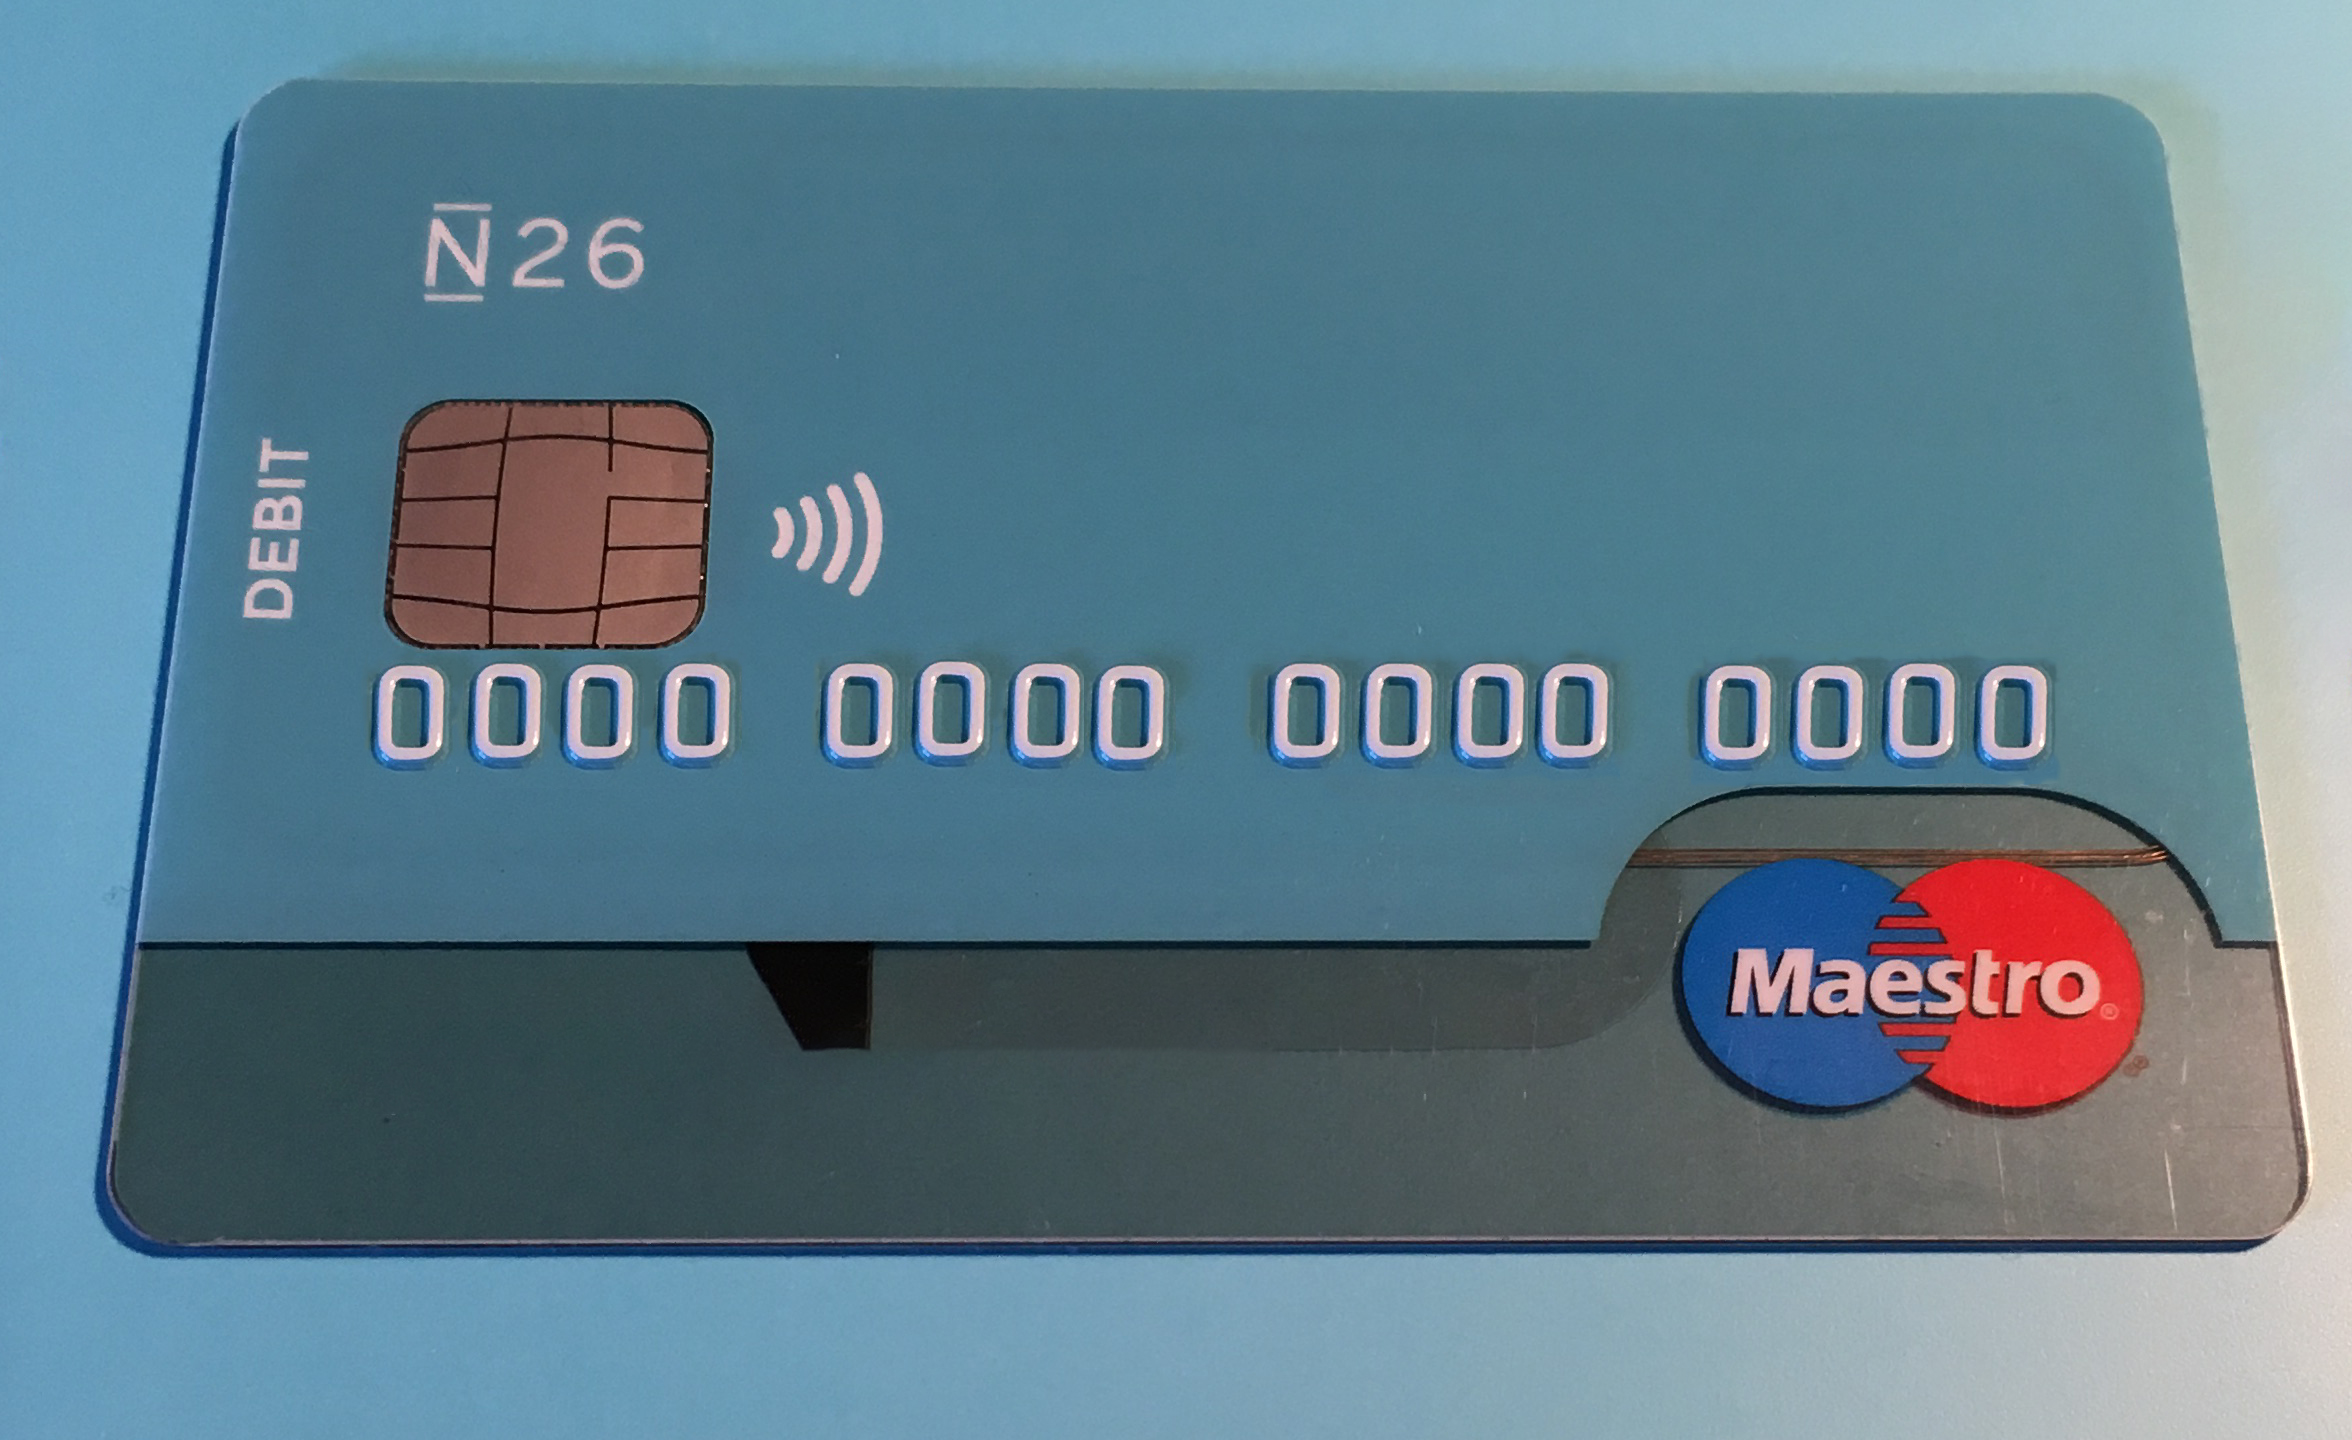 maestro card issued by the german n26 bank - Visa Debit Card App